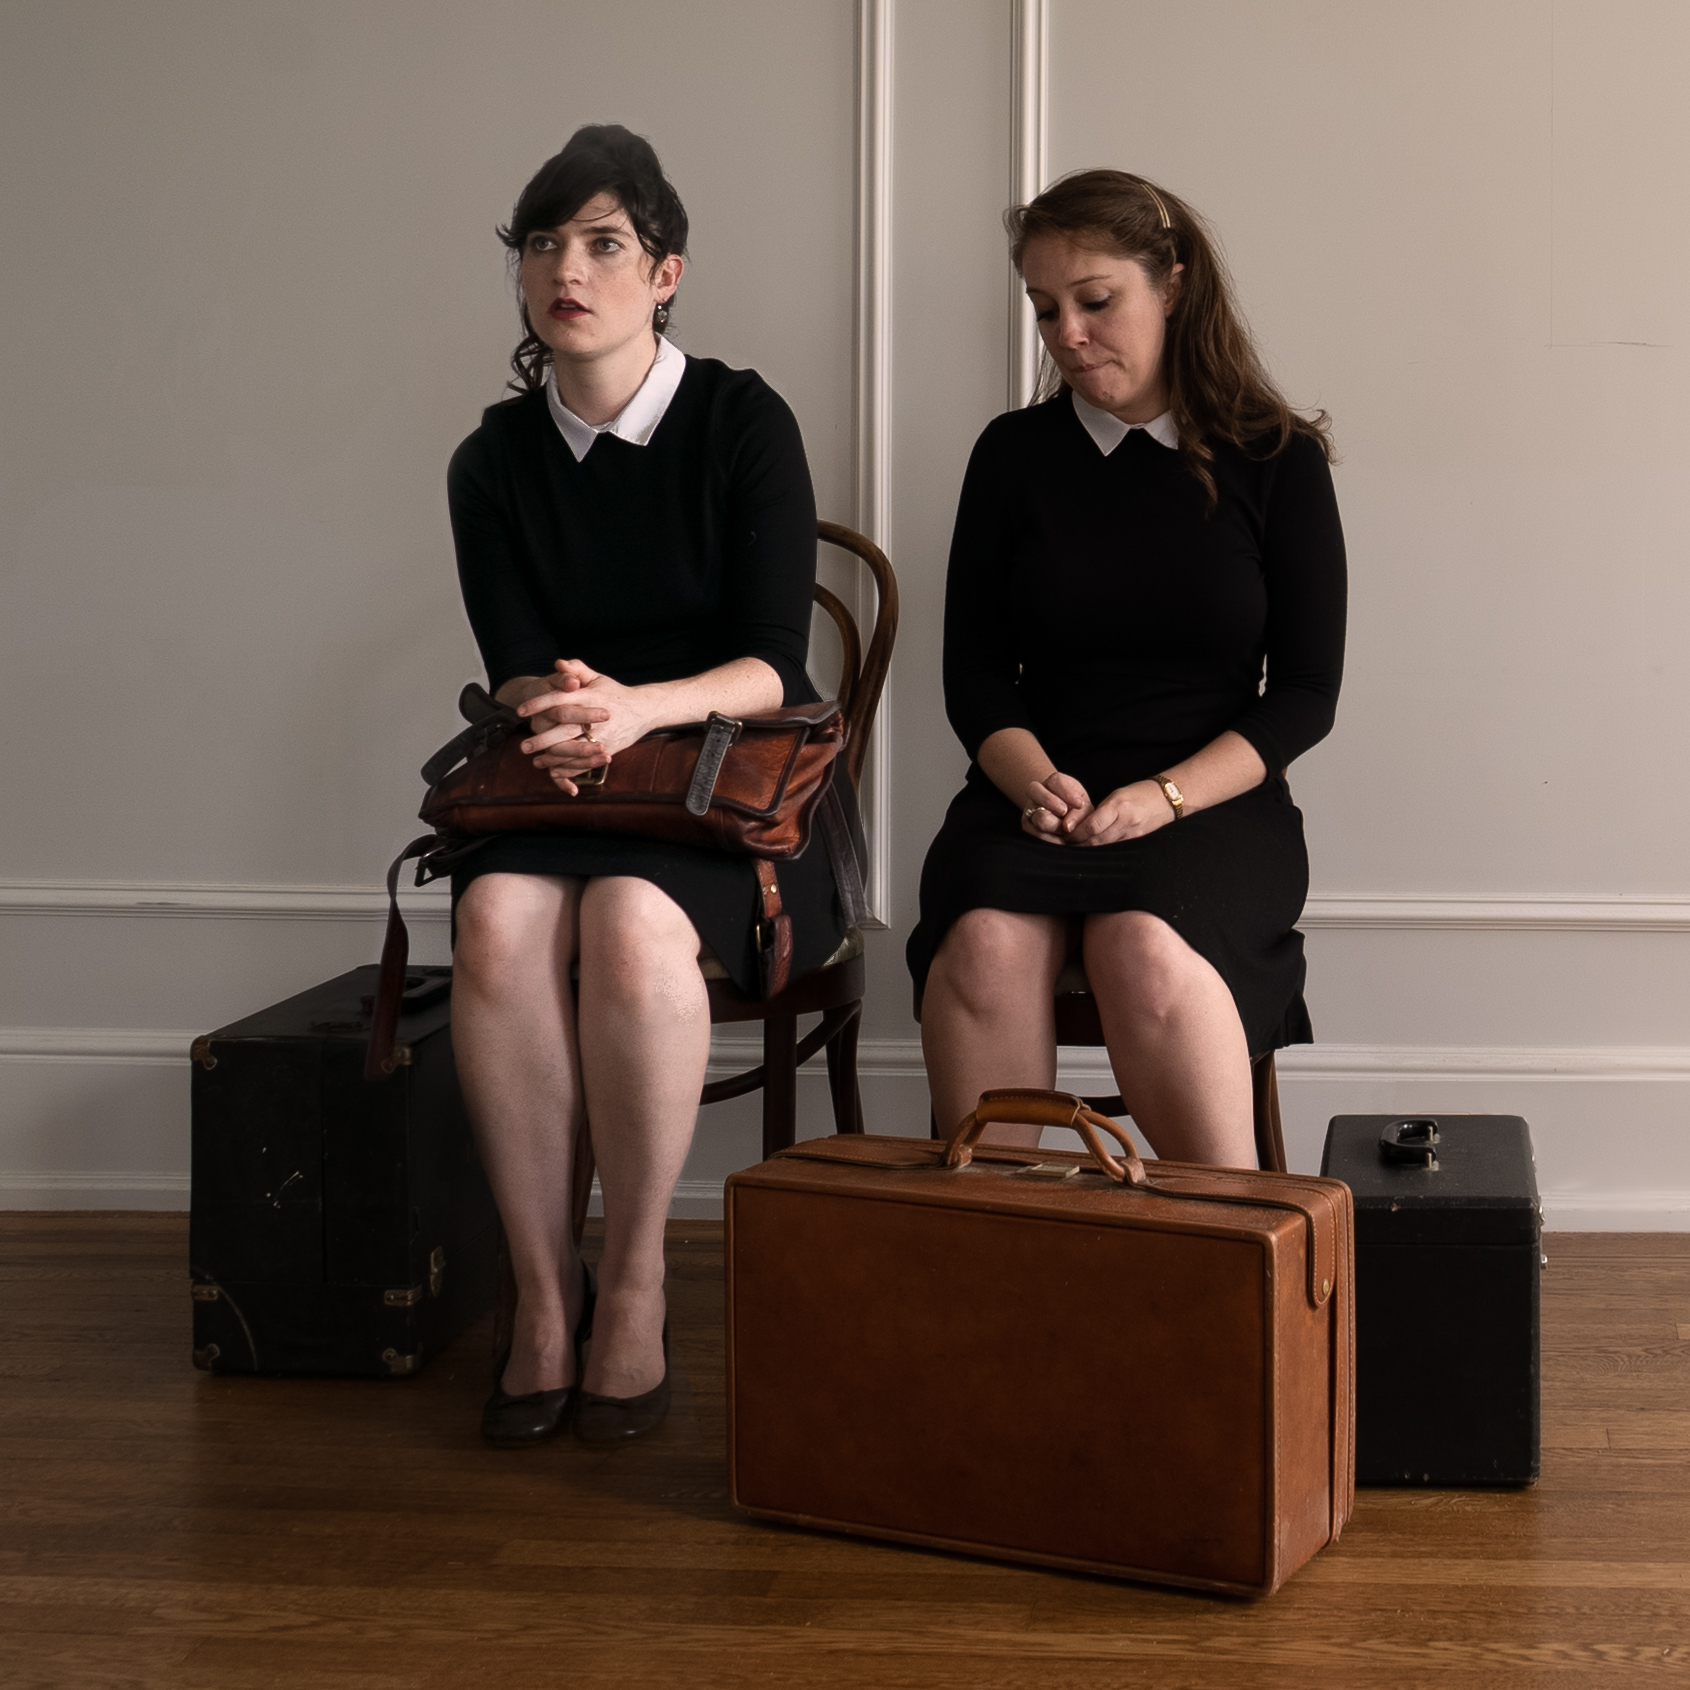 THE RUSSIAN AND THE JEW - BY EMILY PERKINS-MARGOLIN & LIBA VAYNBERGDIRECTED BY INÉS BRAUNDEC 5 - 20, 2018